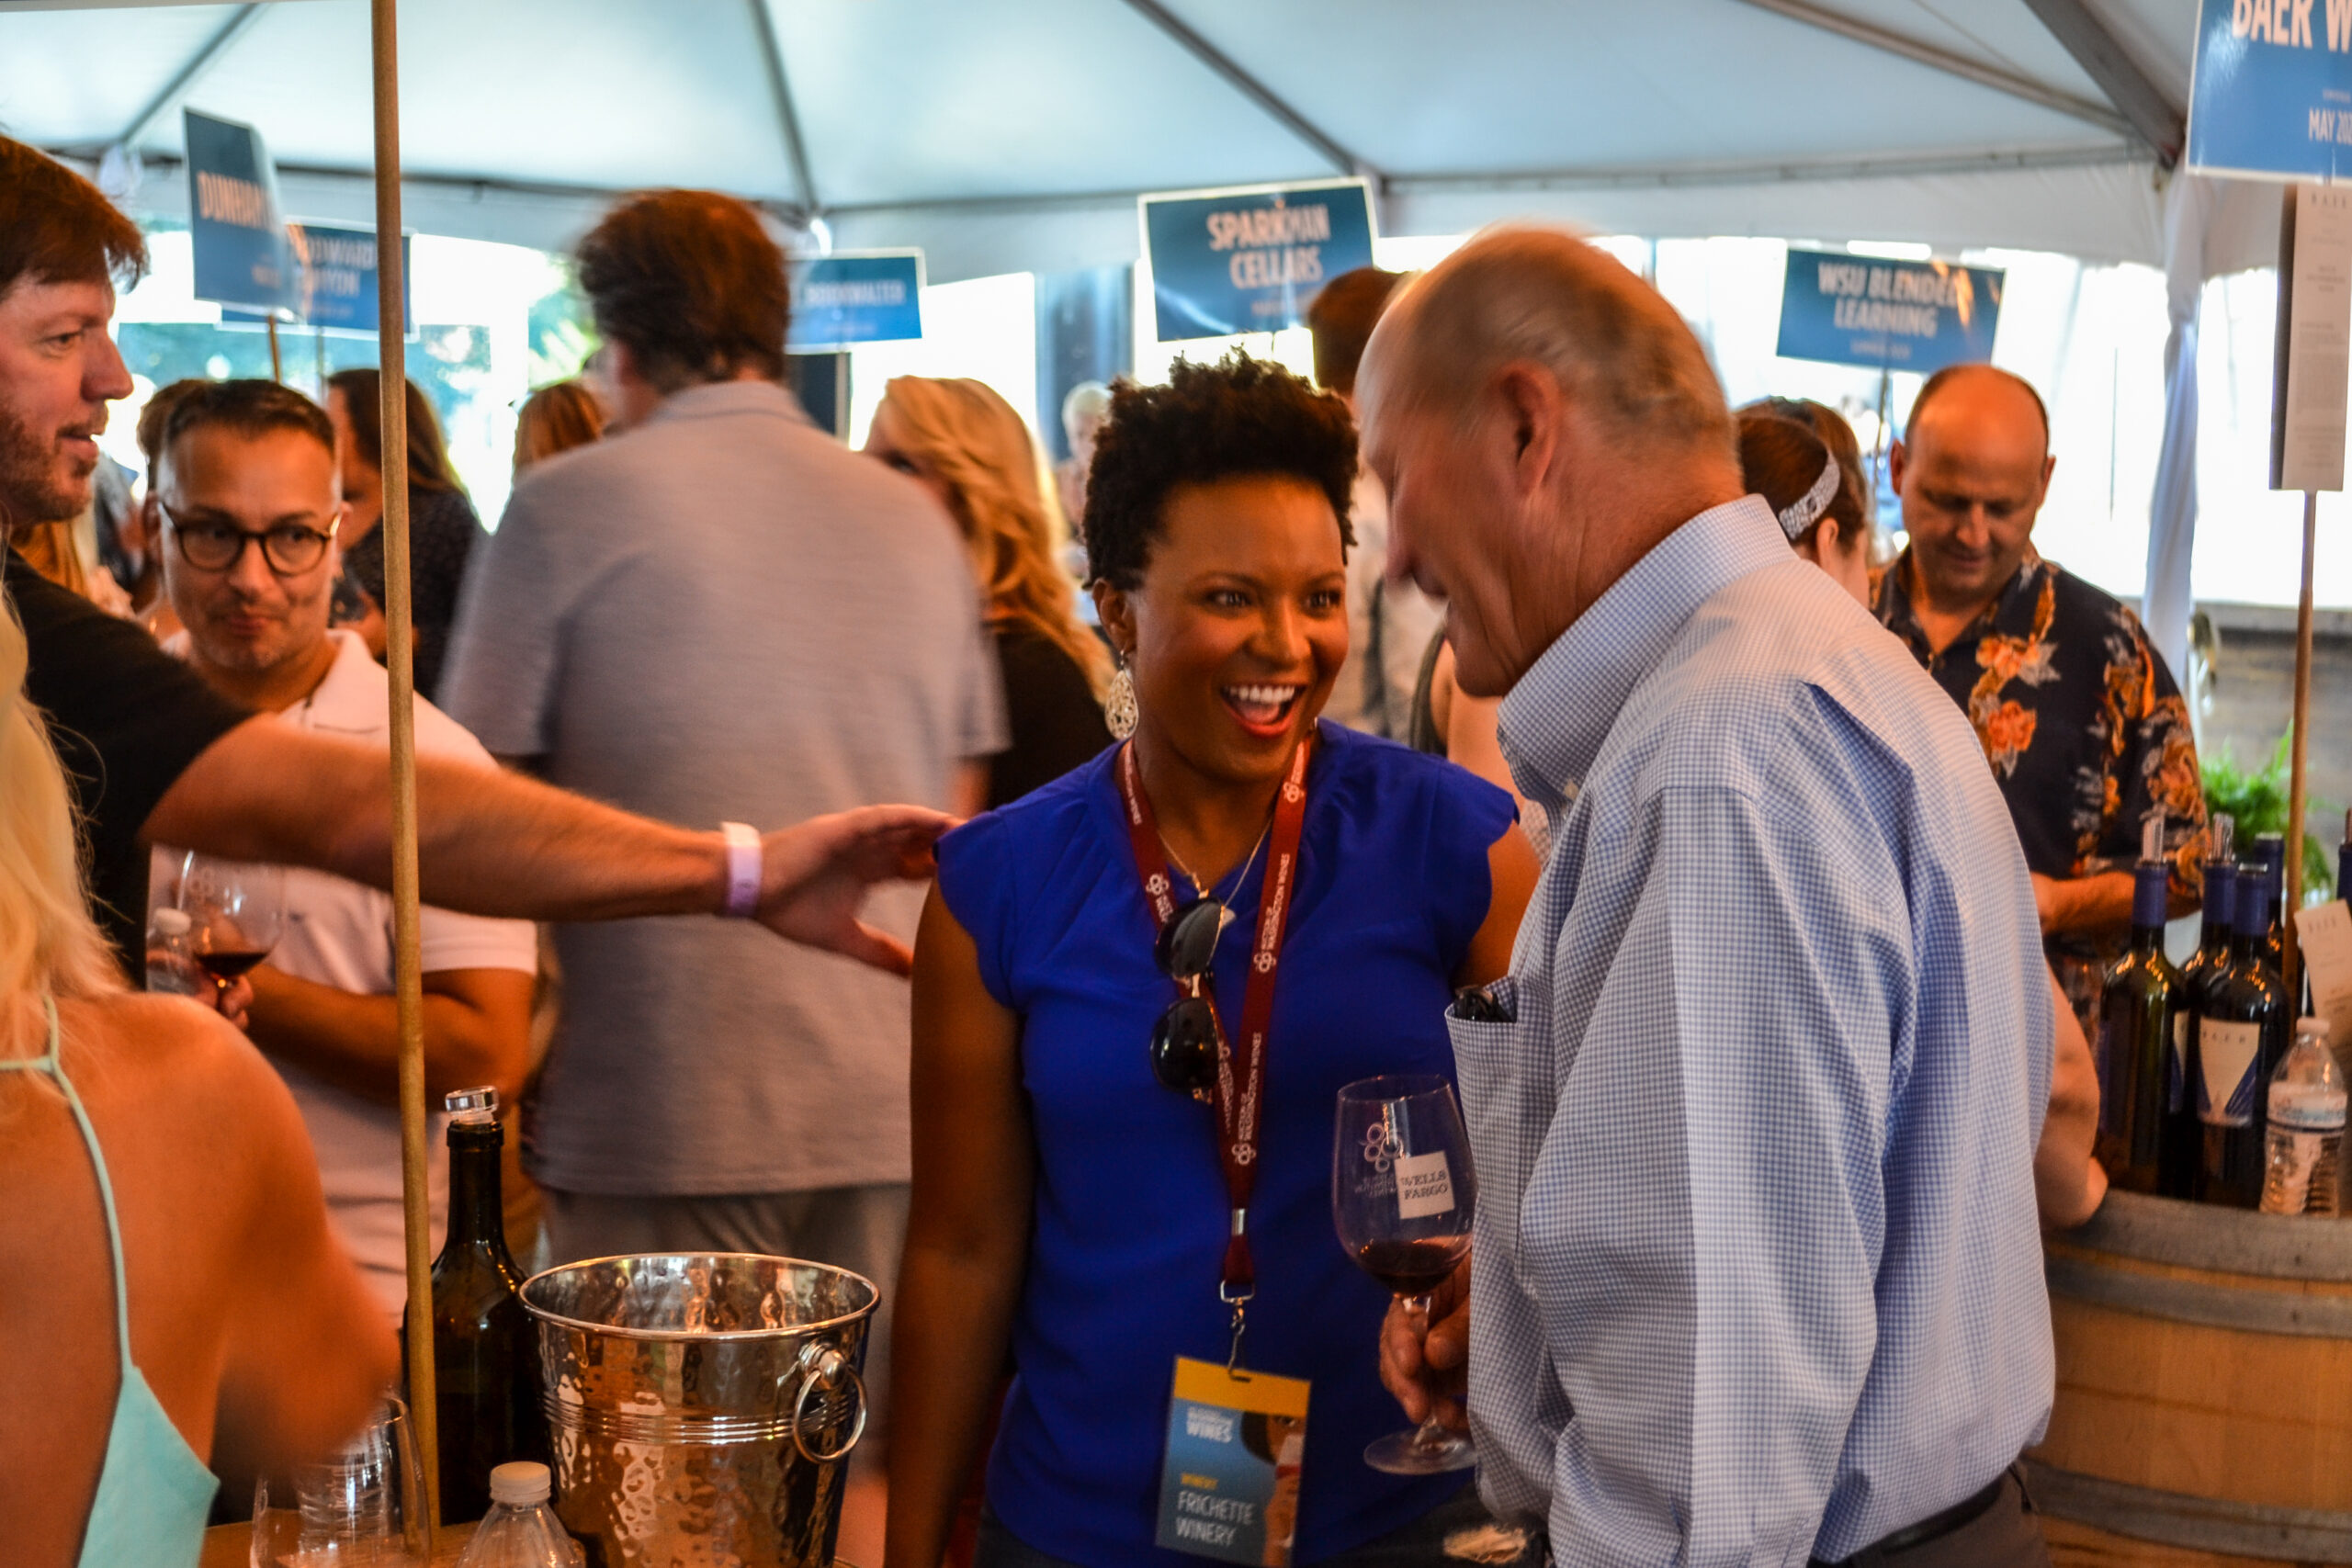 A woman with dark hair in a blue shirt talks with a man in light blue button-up shirt in a crowd of people under a tent.